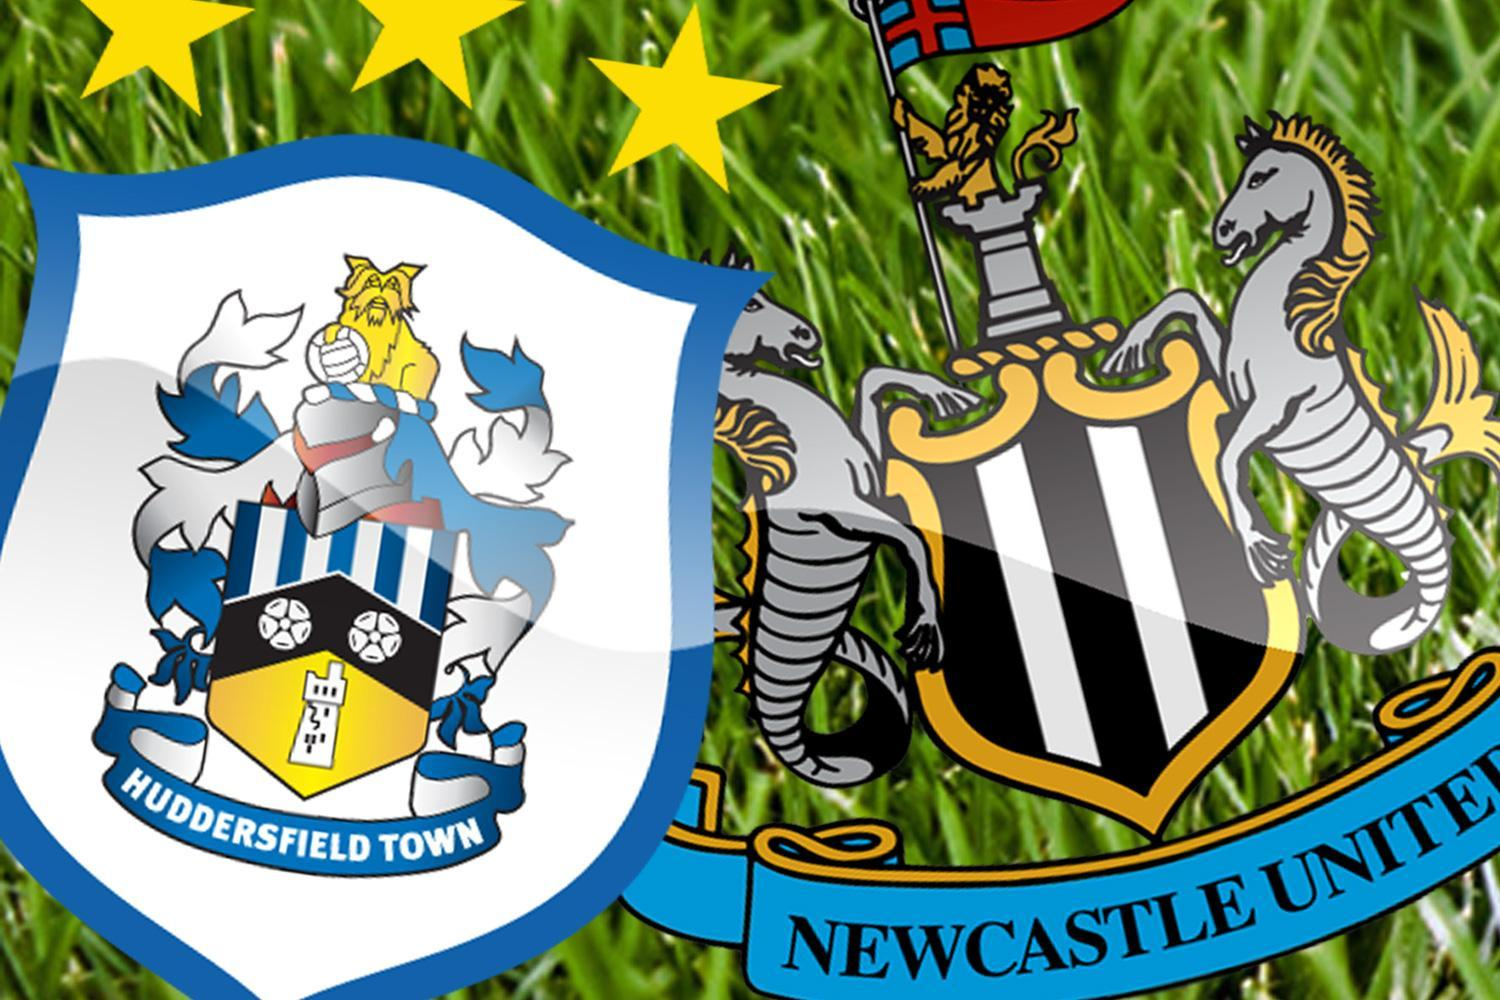 Huddersfield 0-1 Newcastle LIVE SCORE: Latest updates and action from the Premier League clash